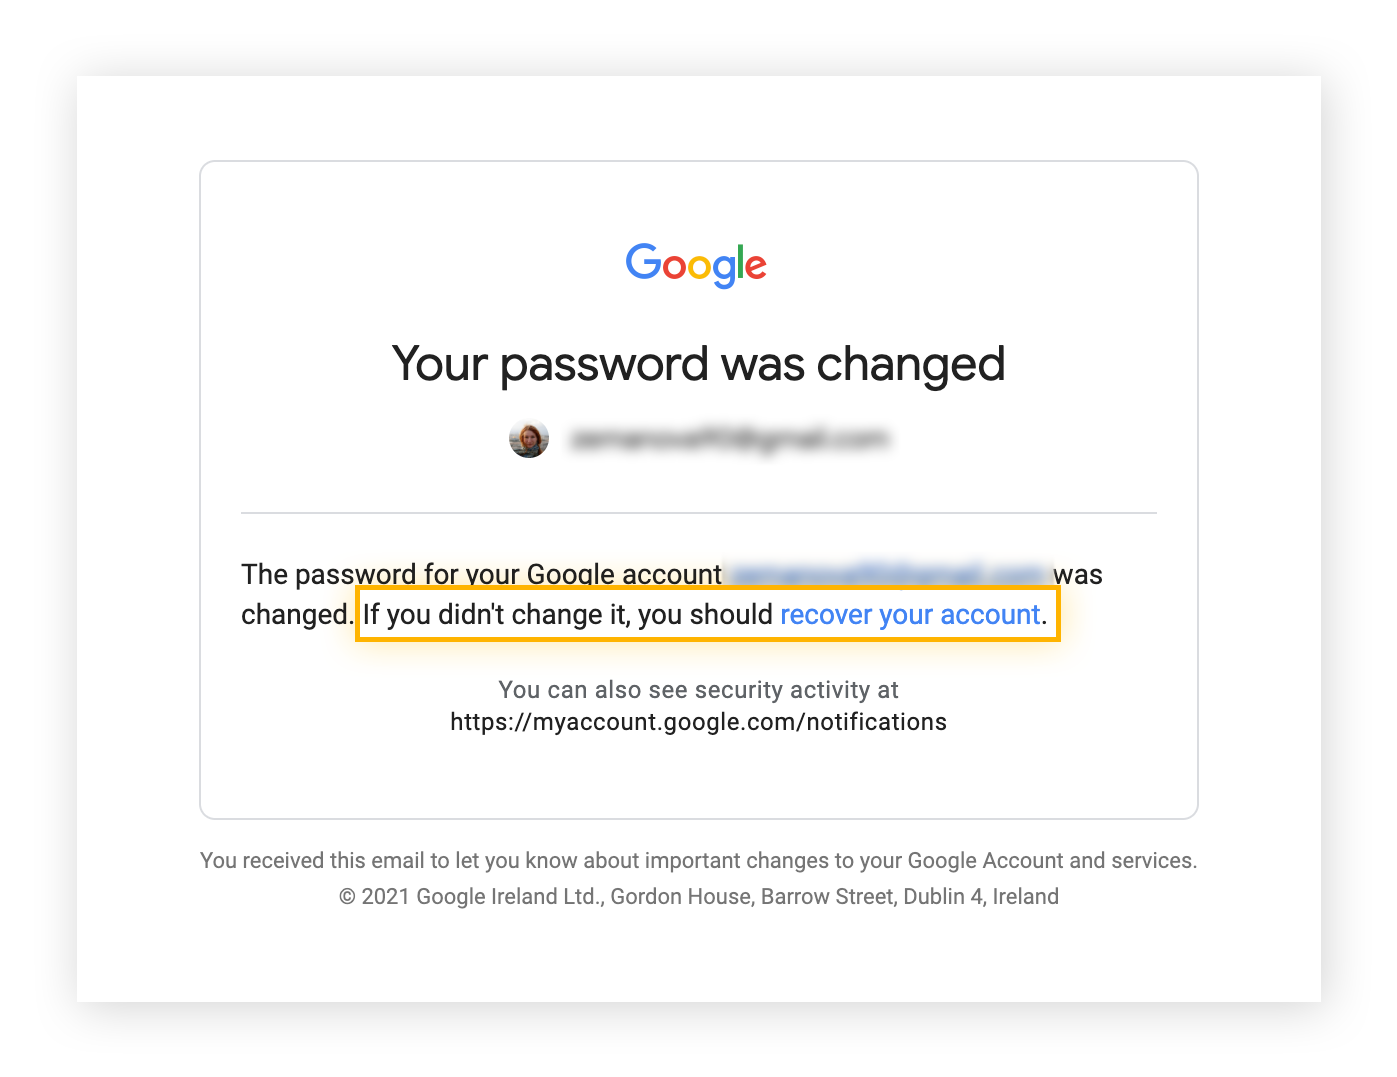 A hacking alert from Gmail.